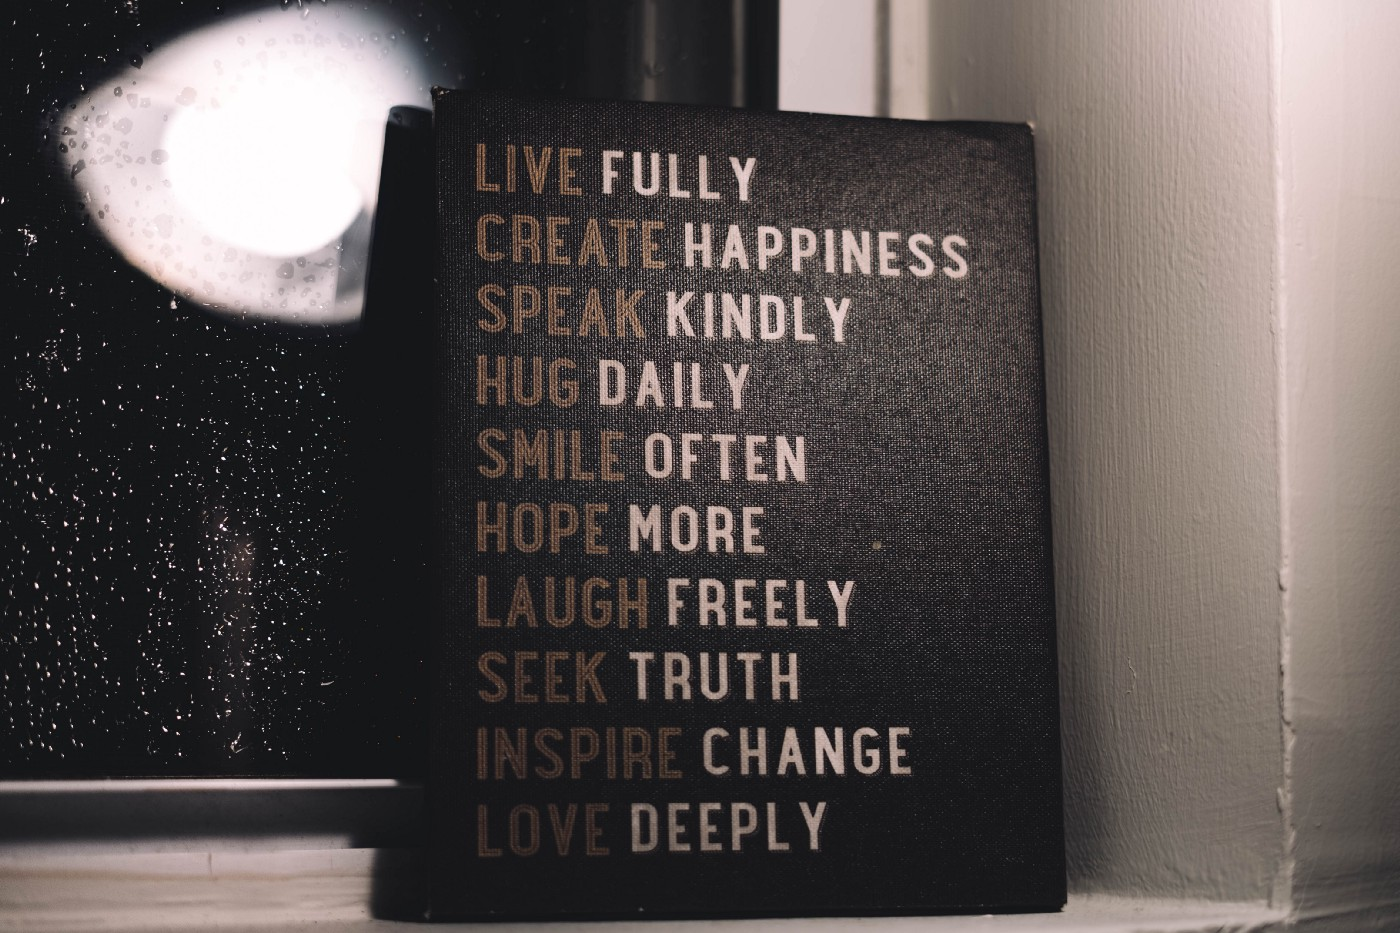 A board with positive statements of live fully, create happiness, speaker kindly, hug daily, smile often, hope more, laugh freely, seek truth, inspire change, love deeply